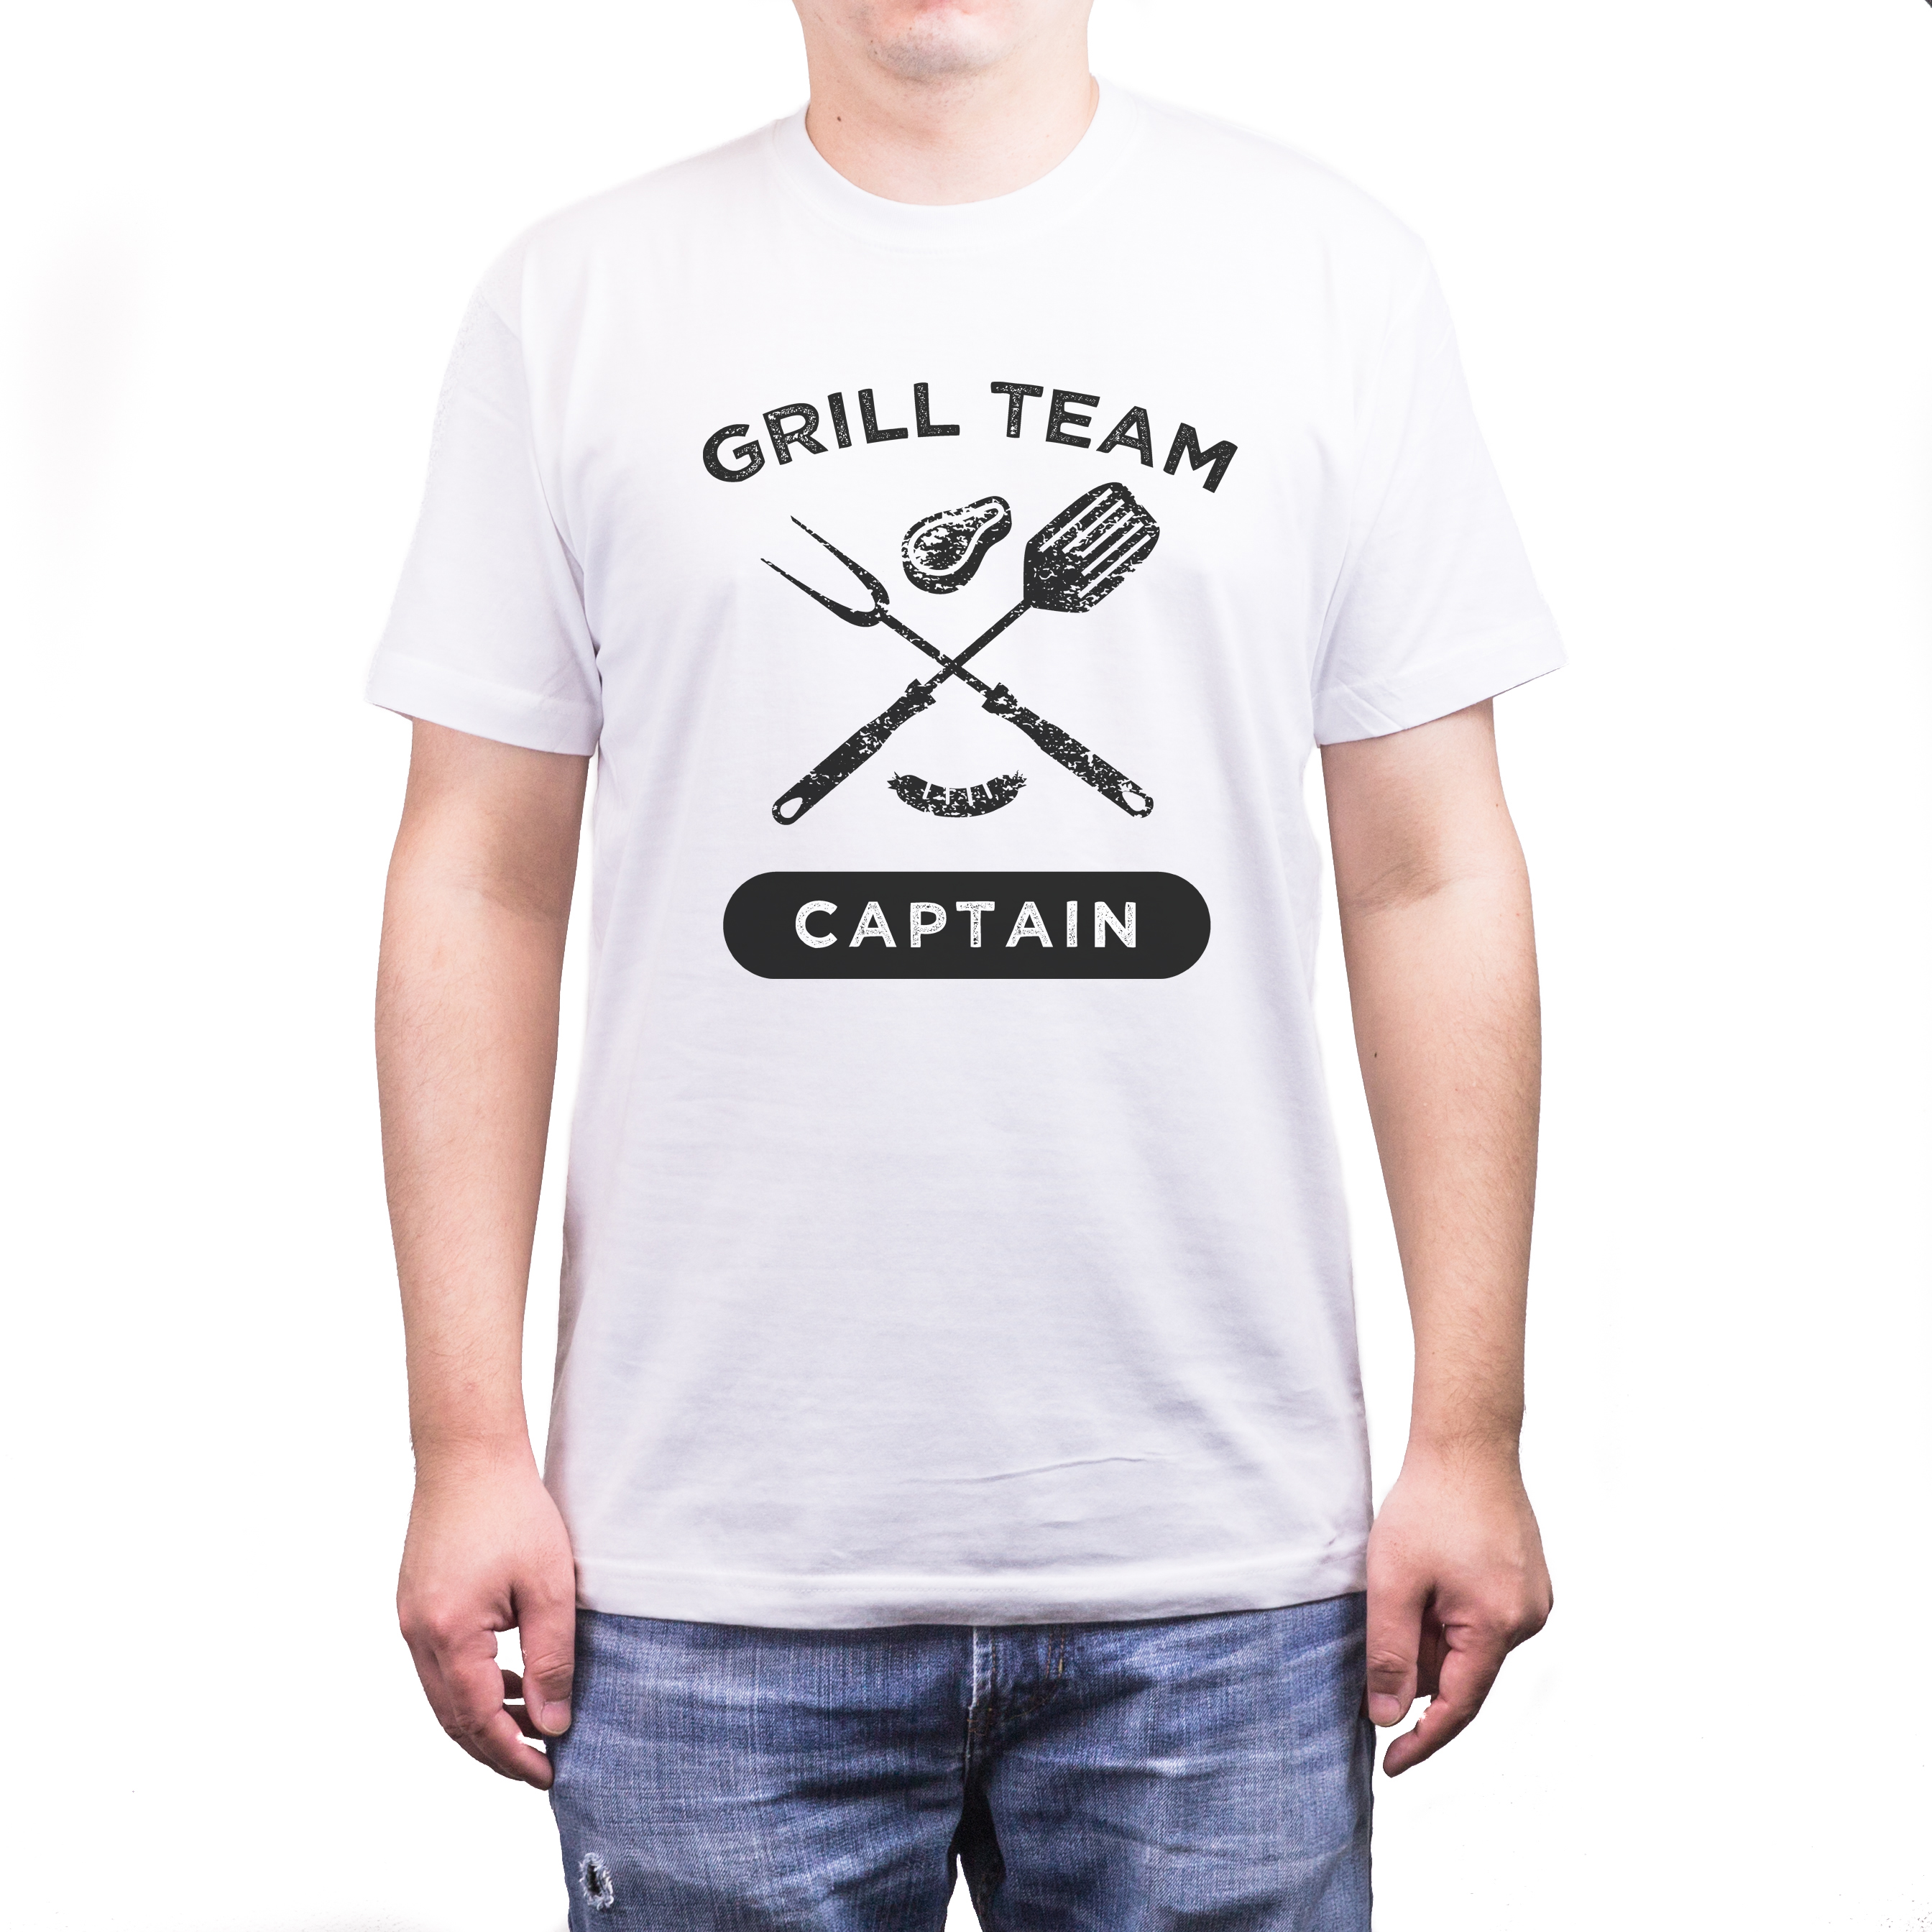 Grill Team Captain Funny White T-Shirt For Dad